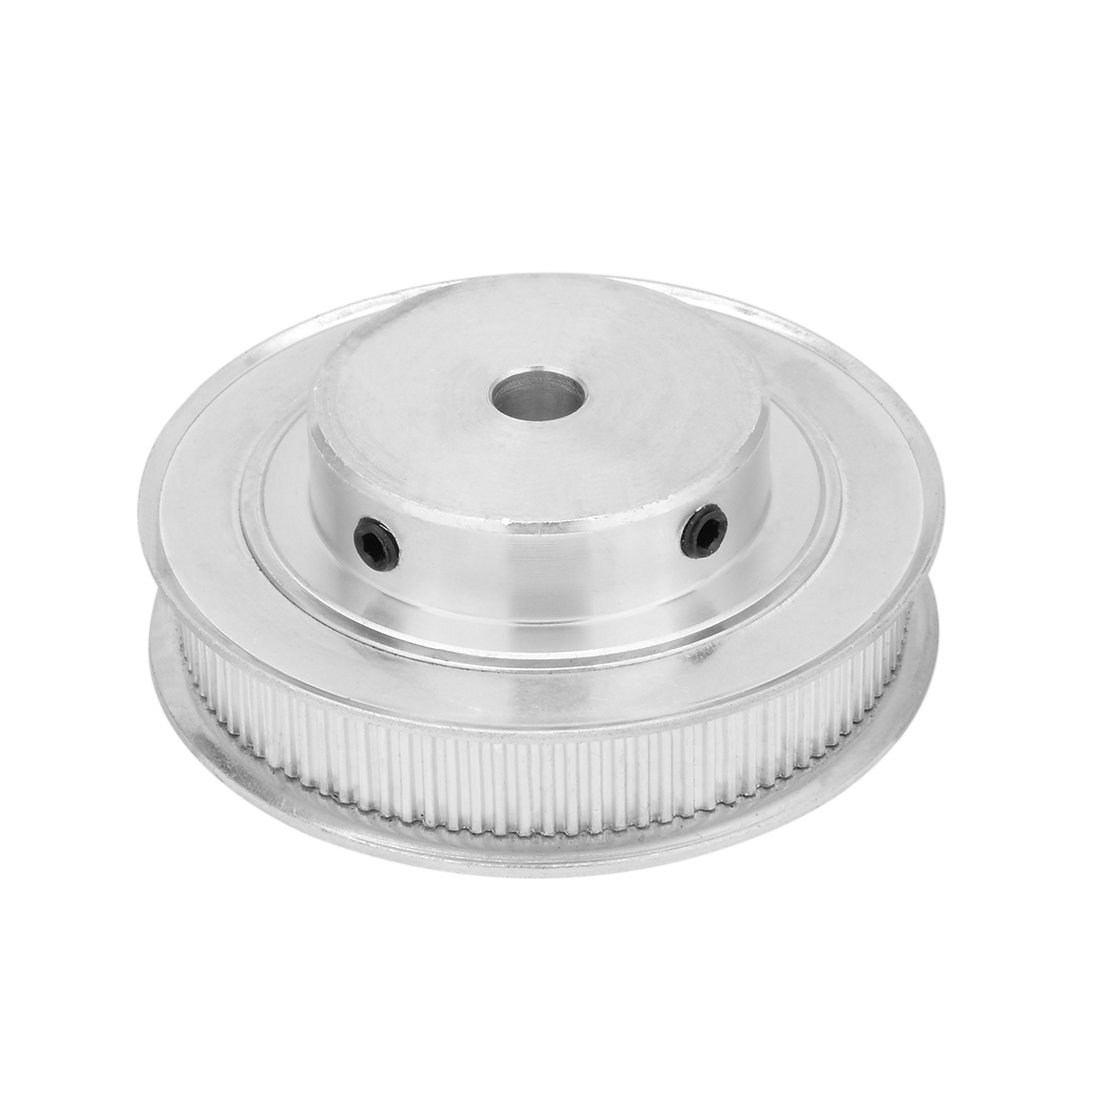 uxcell Aluminum MXL 100 Teeth 8mm Bore Timing Belt Pulley Synchronous Wheel for 10mm Belt 3D Printer CNC